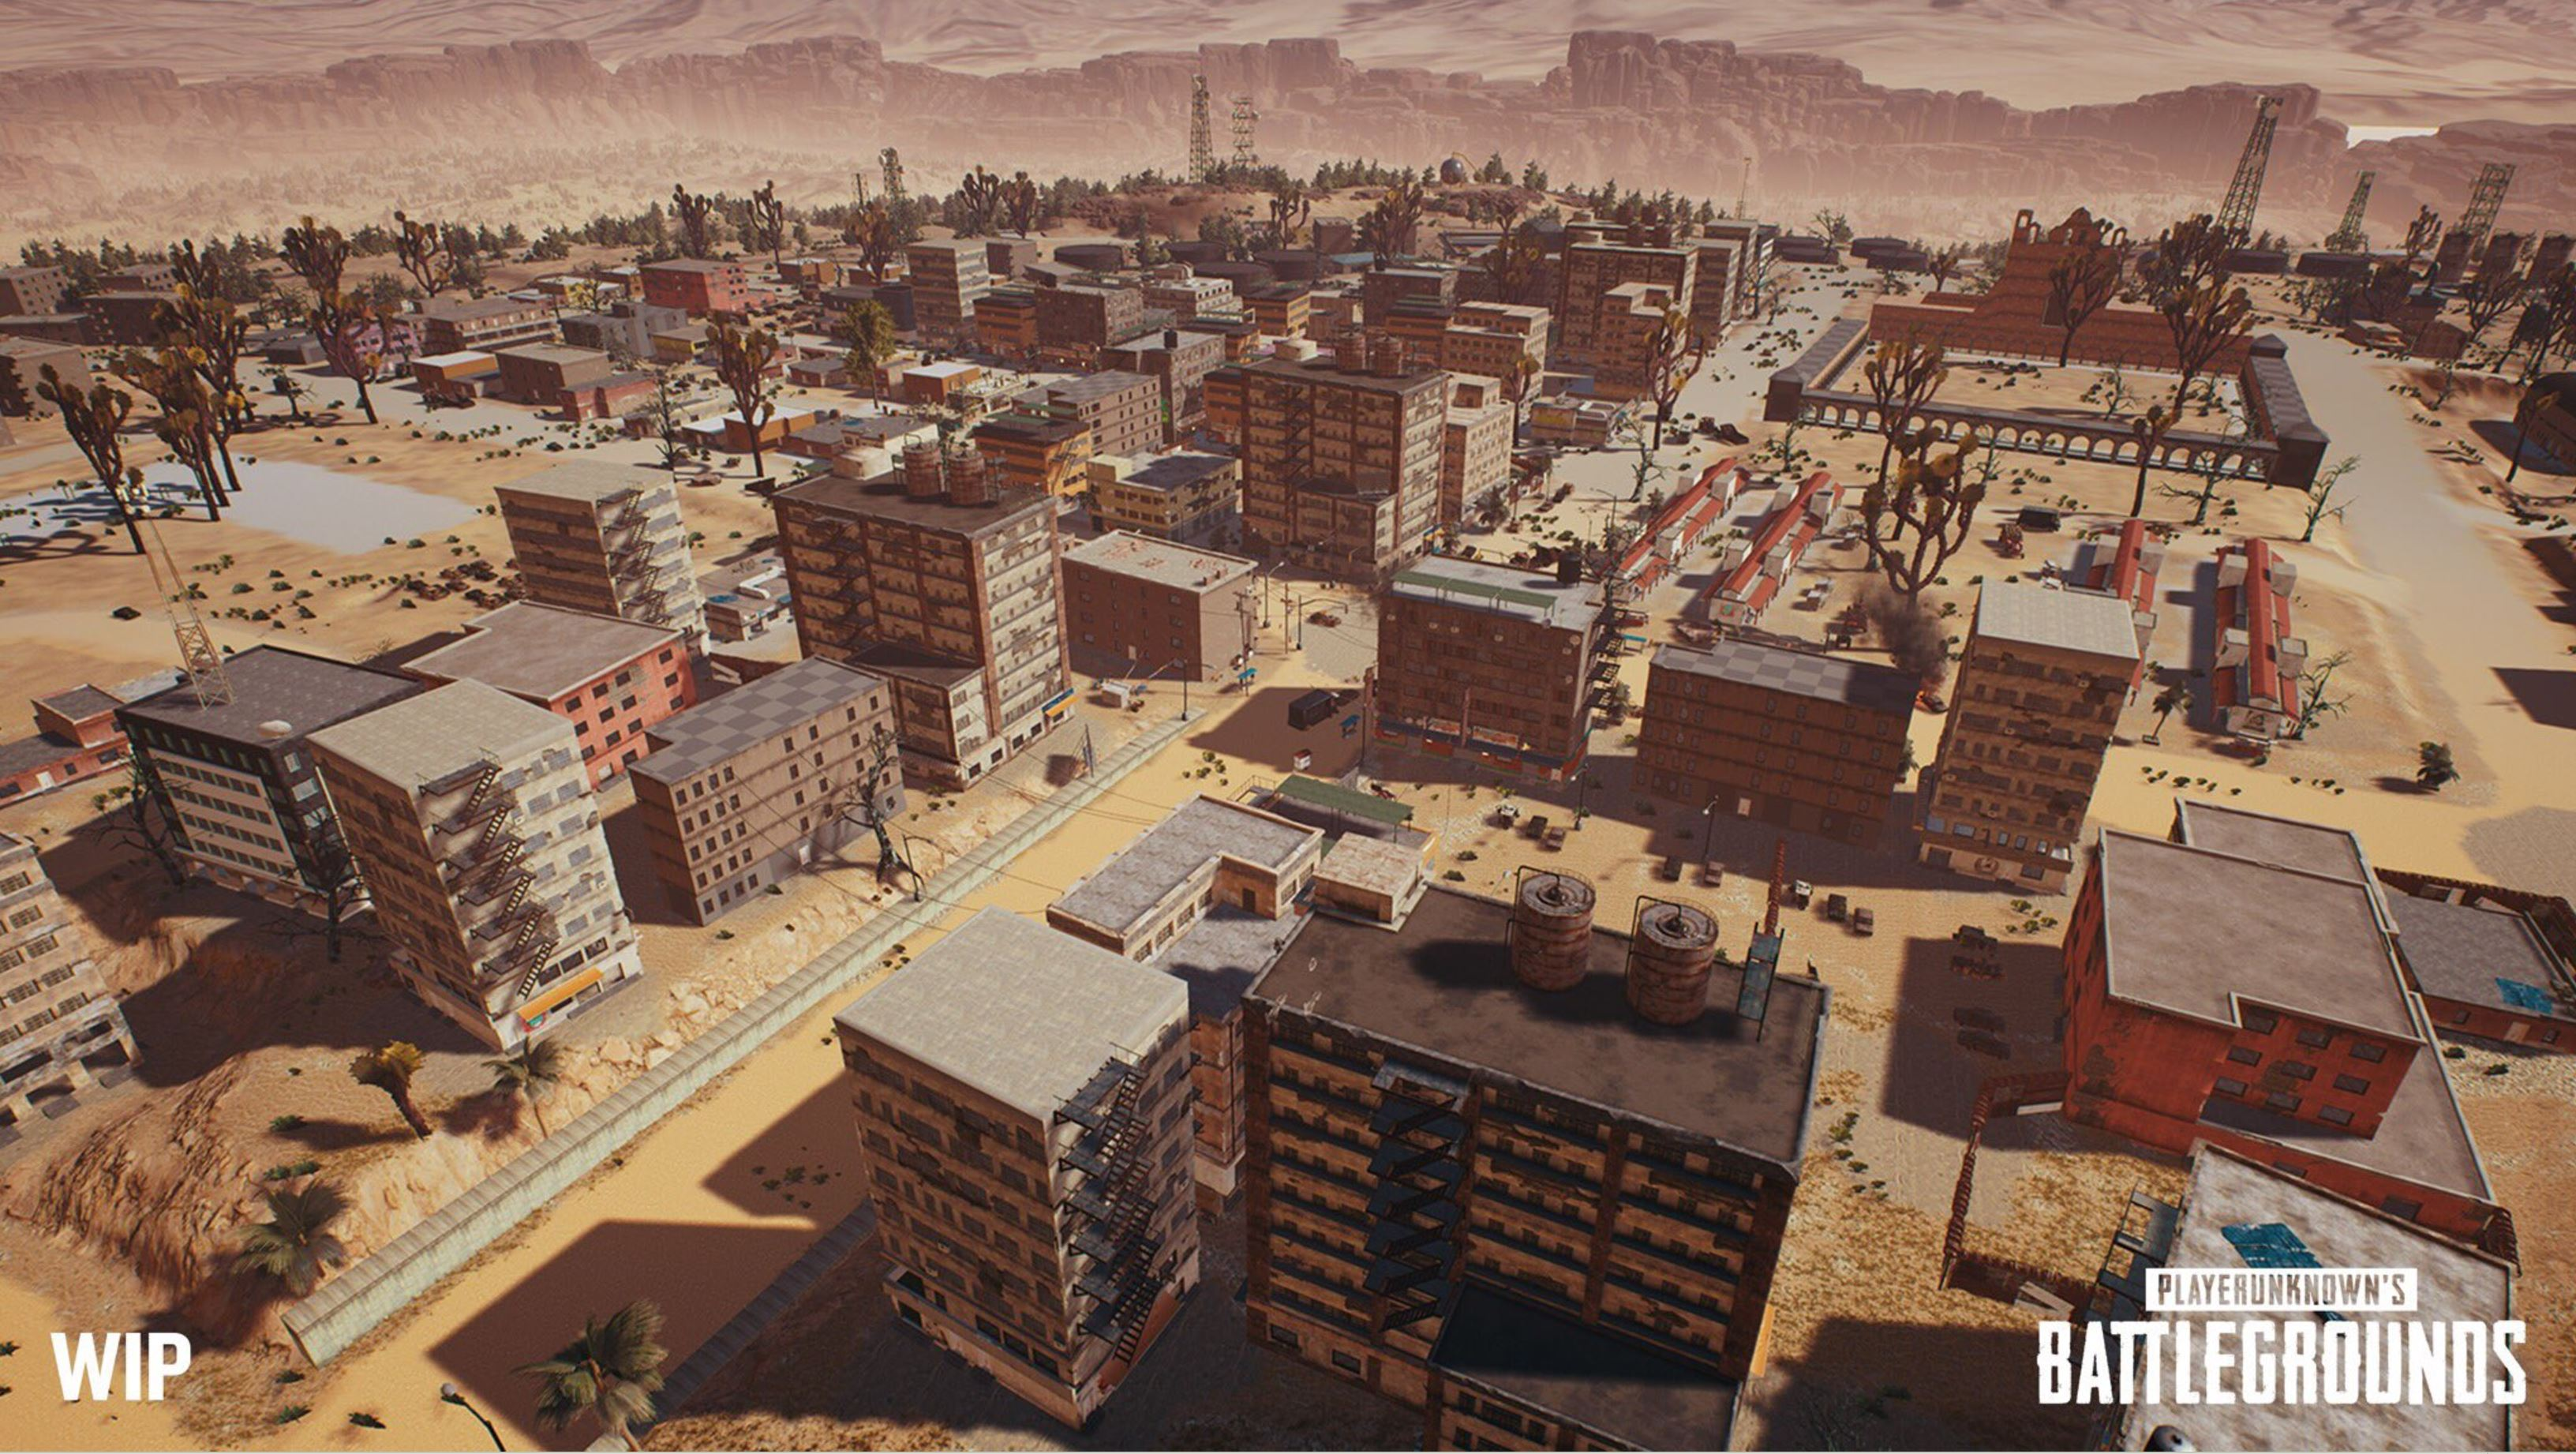 New PUBG Map Puts Desert Before Chicken Dinner   Shacknews Many of the structures are much larger than those seen in the PUBG s  default map